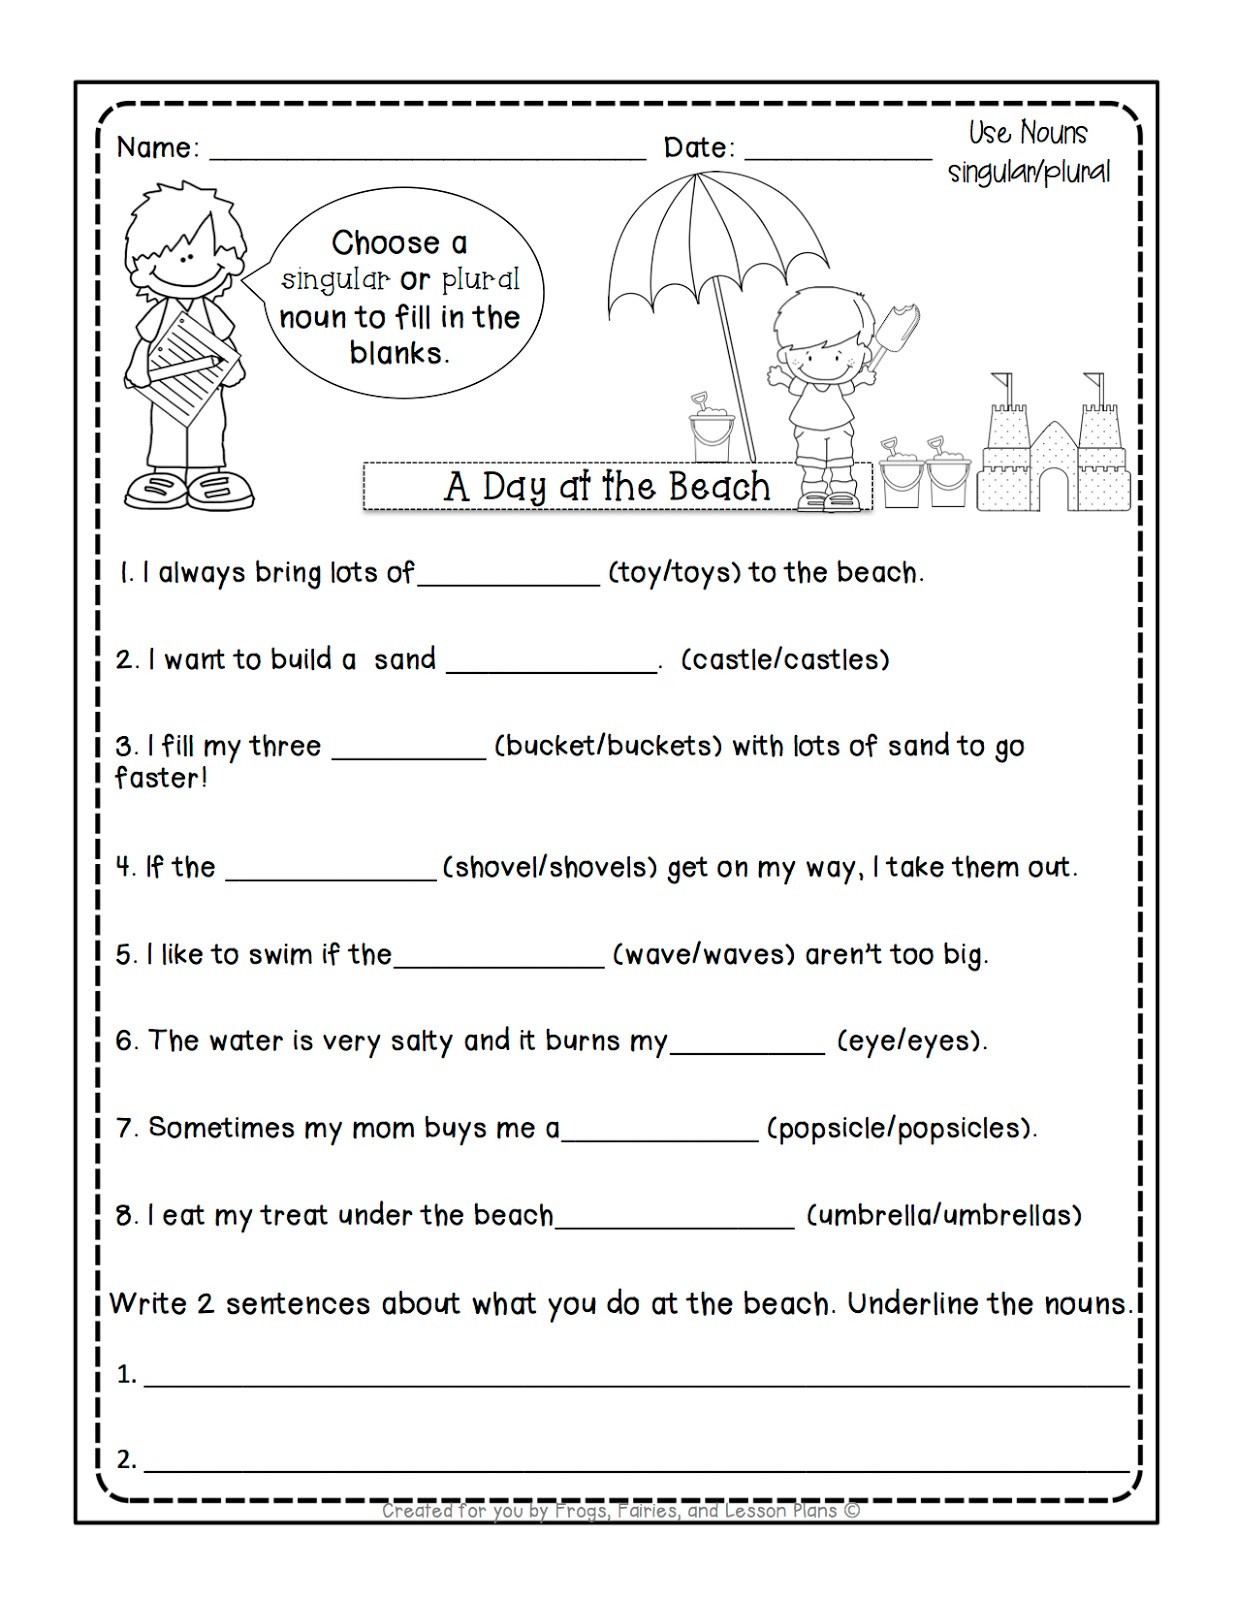 Plural Nouns Worksheet 5th Grade Frogs Fairies and Lesson Plans Noun Lessons You Need to